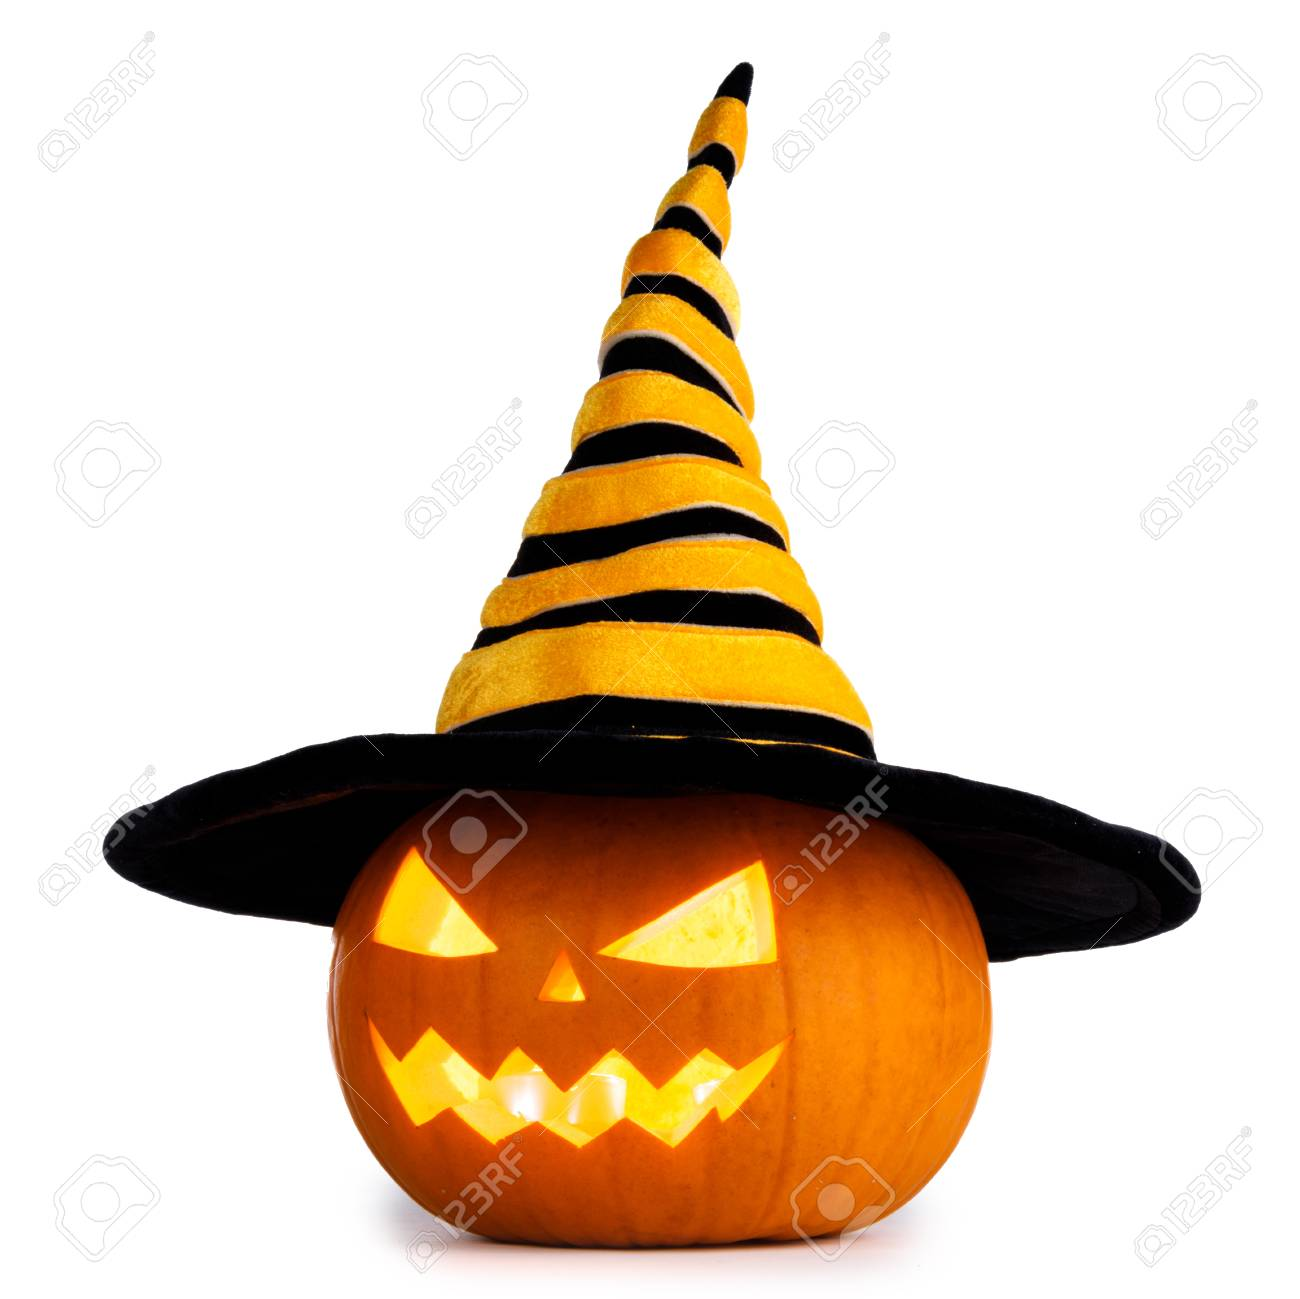 Jack O Lantern Halloween pumpkin with witches hat isolated on white background - 109823668